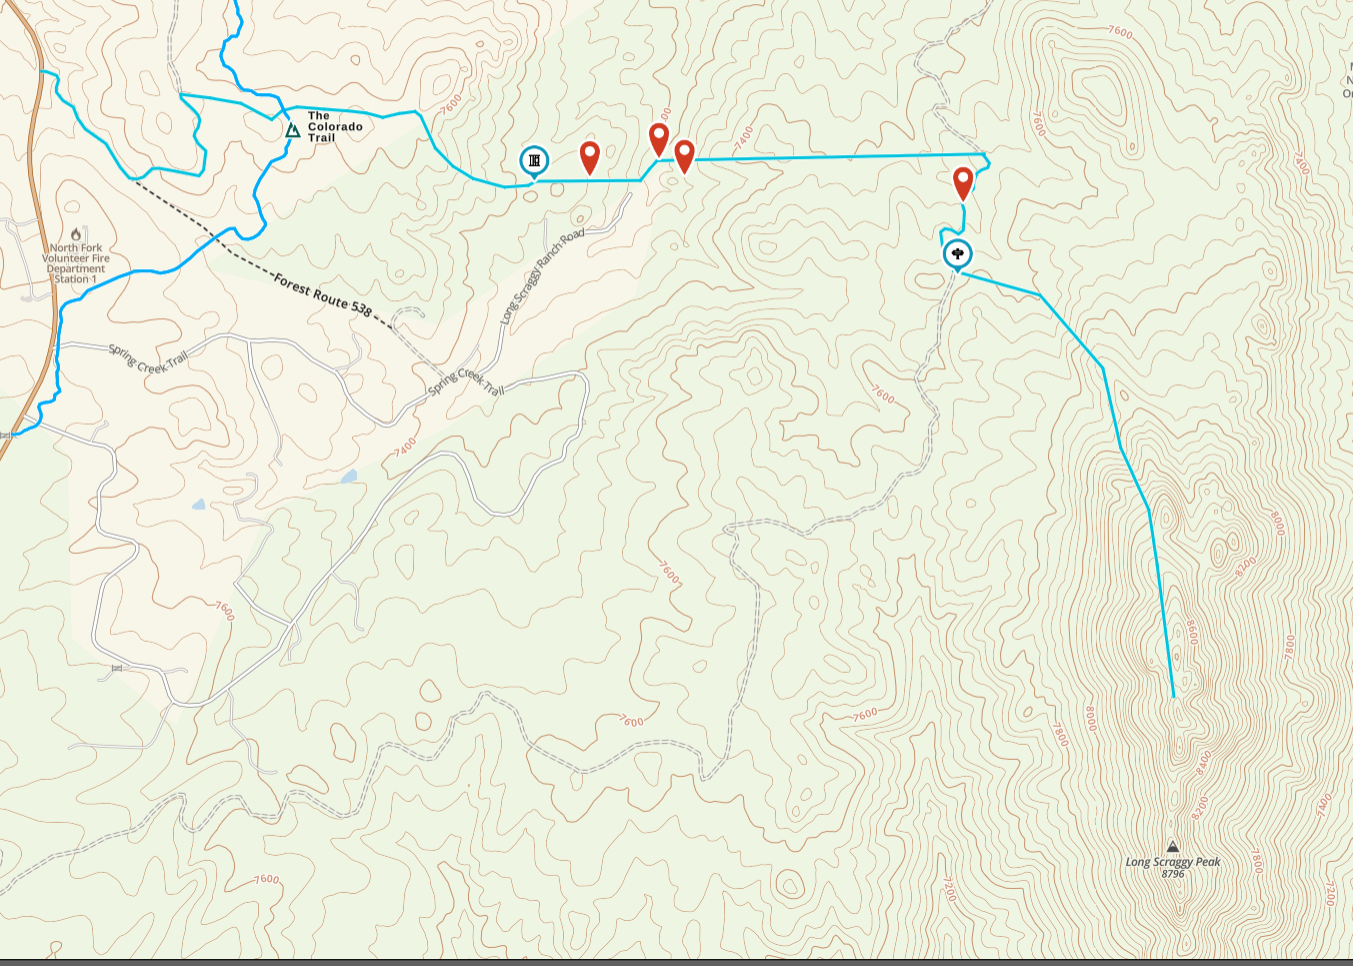 The map and planned route, more or less.